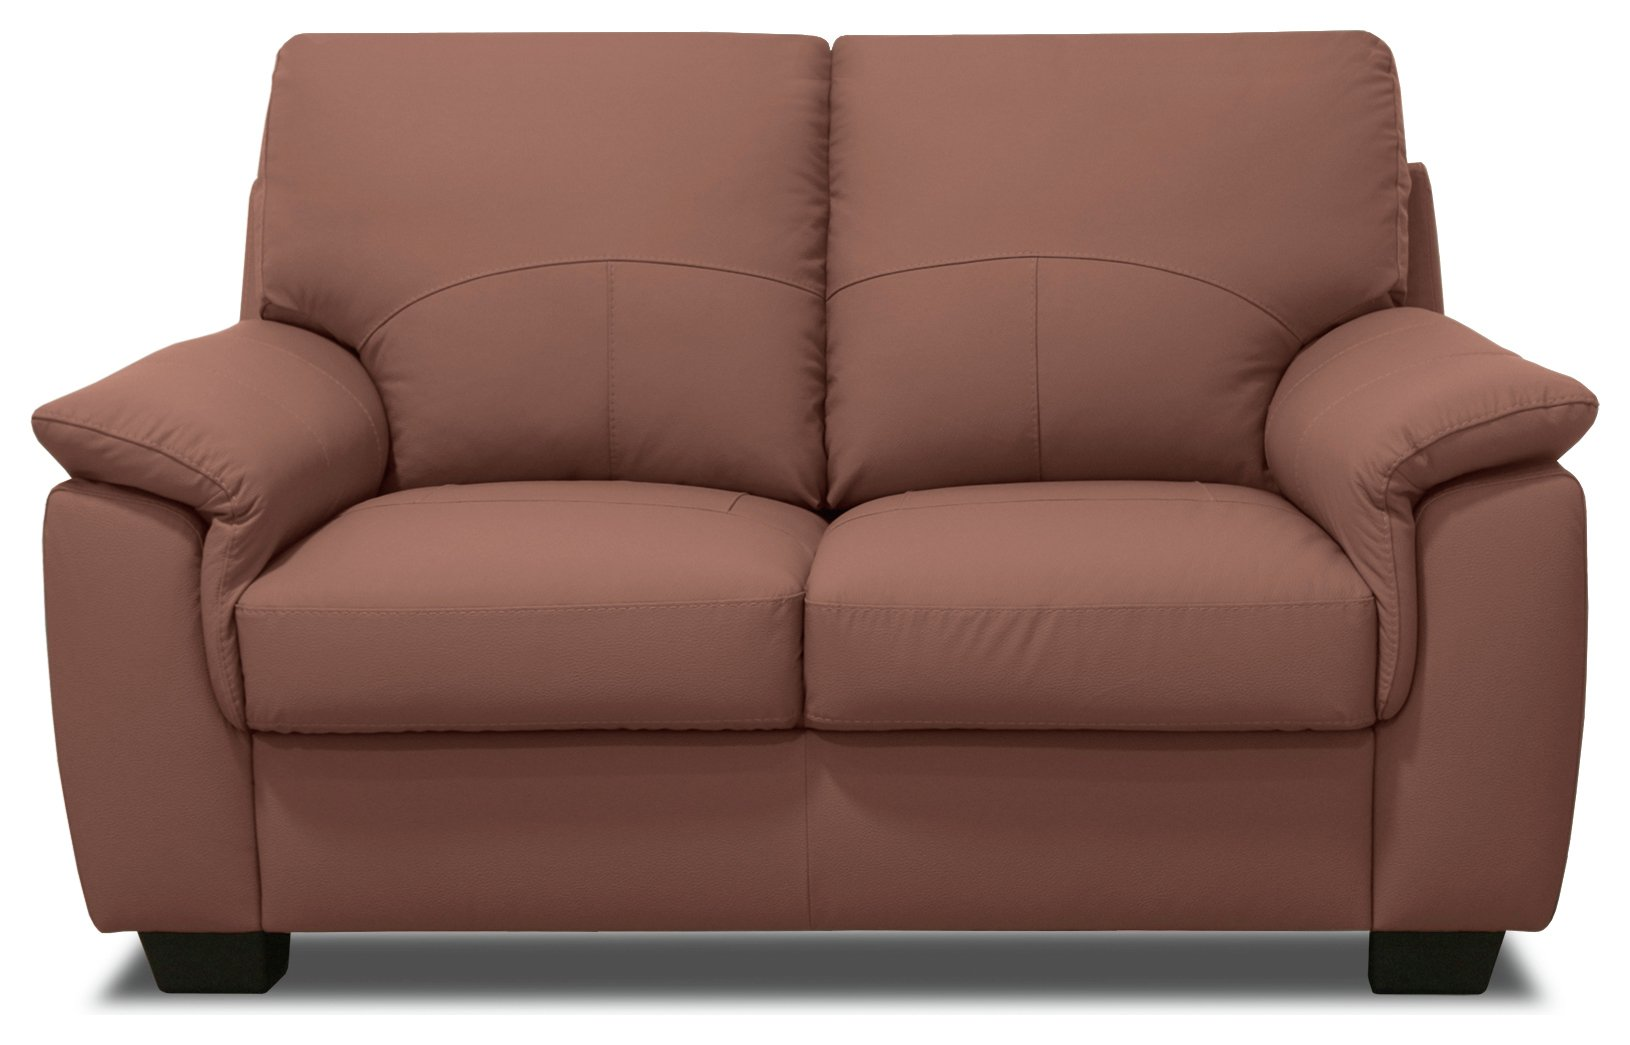 Image of HOME - Lukah 2 Seater - Leather Sofa - Tan